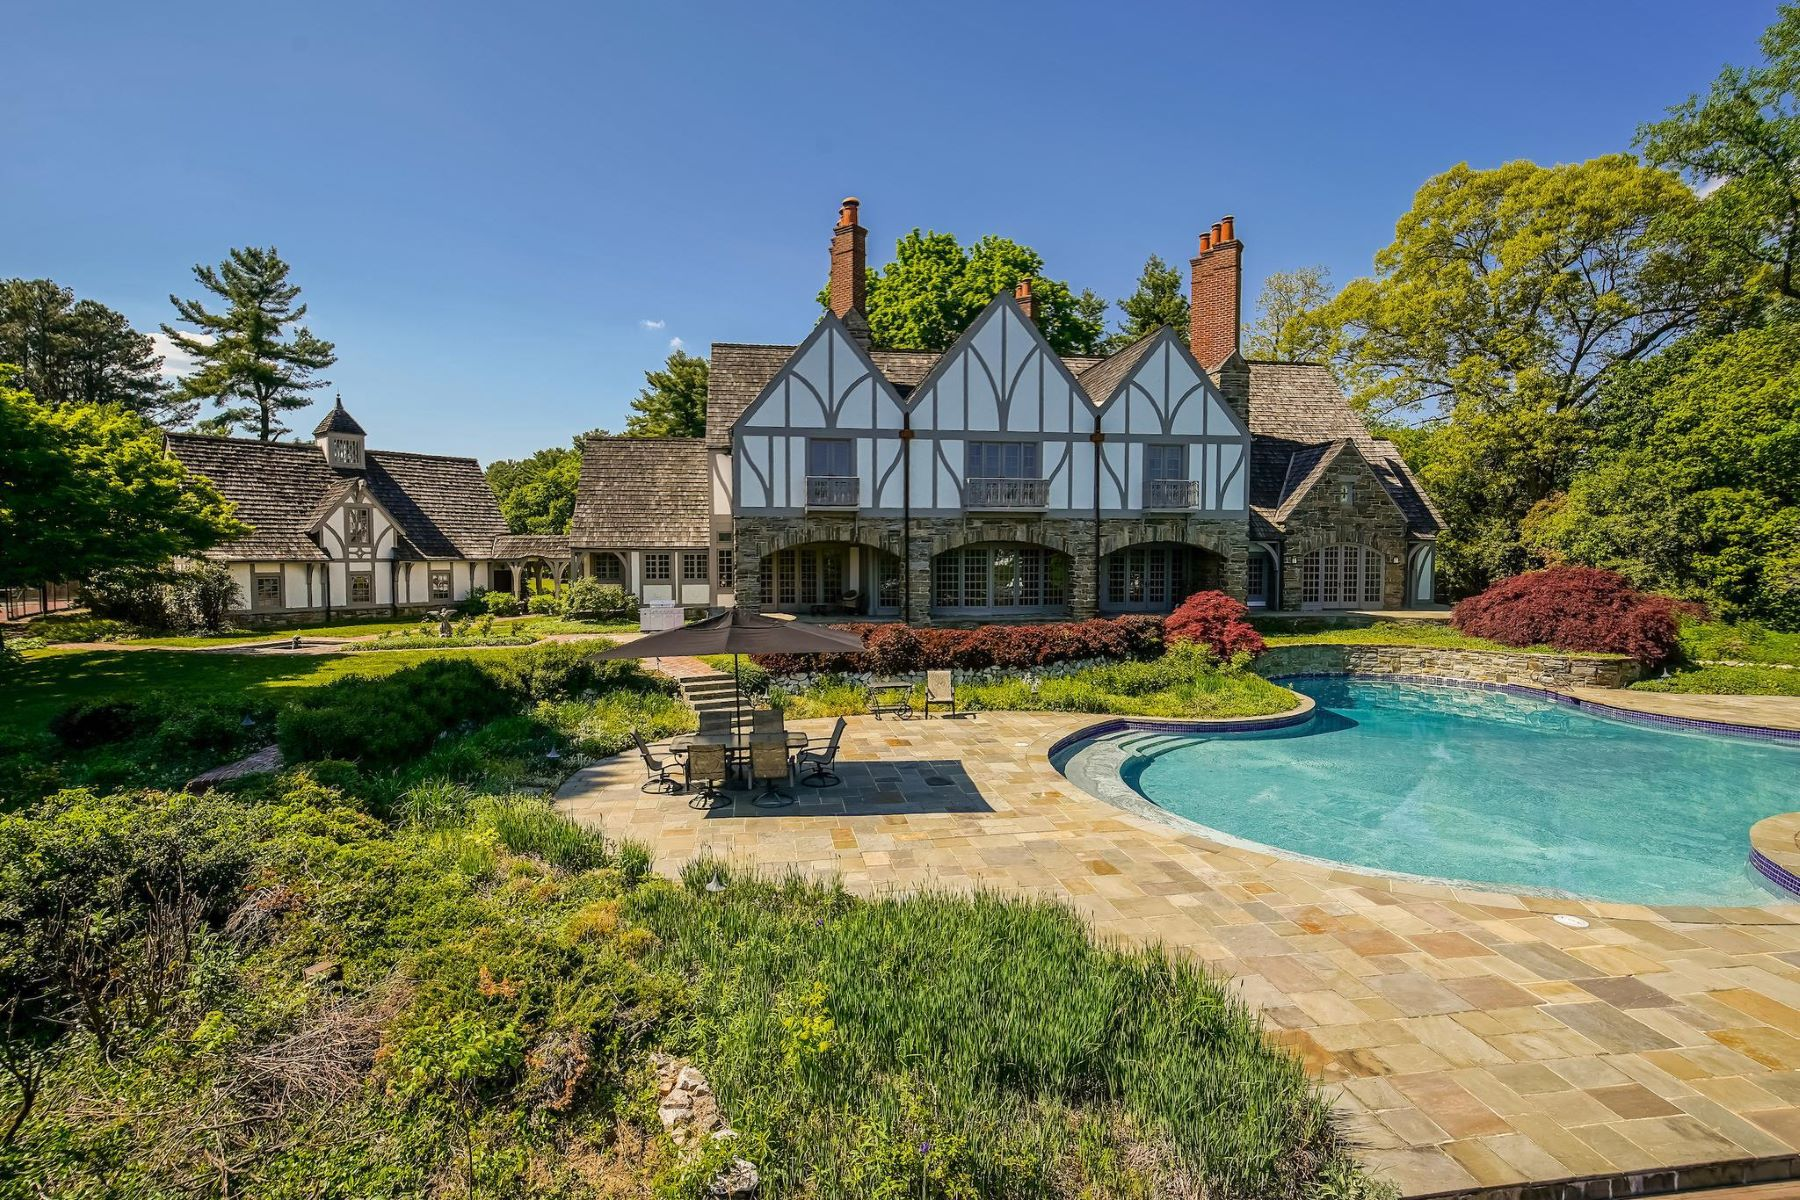 Single Family Homes for Sale at 869 Childs Point Rd Annapolis, Maryland 21401 United States